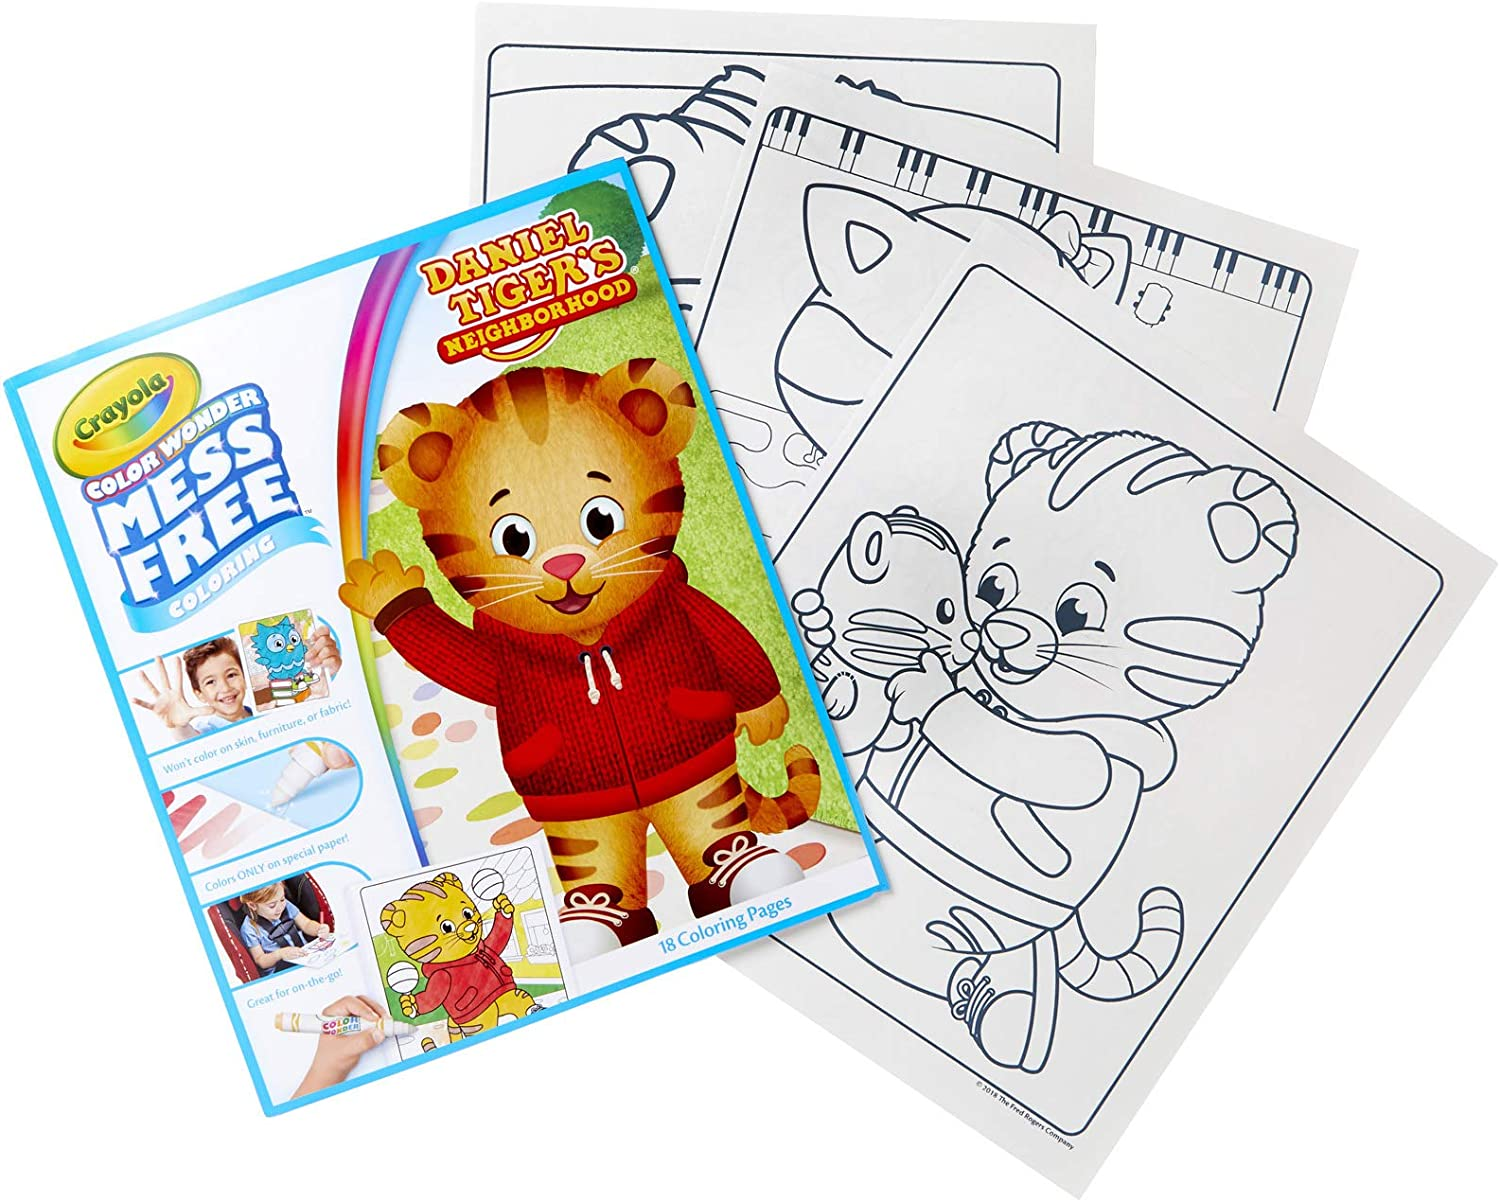 Amazon Com Crayola Color Wonder Daniel Tiger S Neighborhood 18 Mess Free Coloring Pages Kids Indoor Activities At Home Gift For Age 3 4 5 6 Toys Games